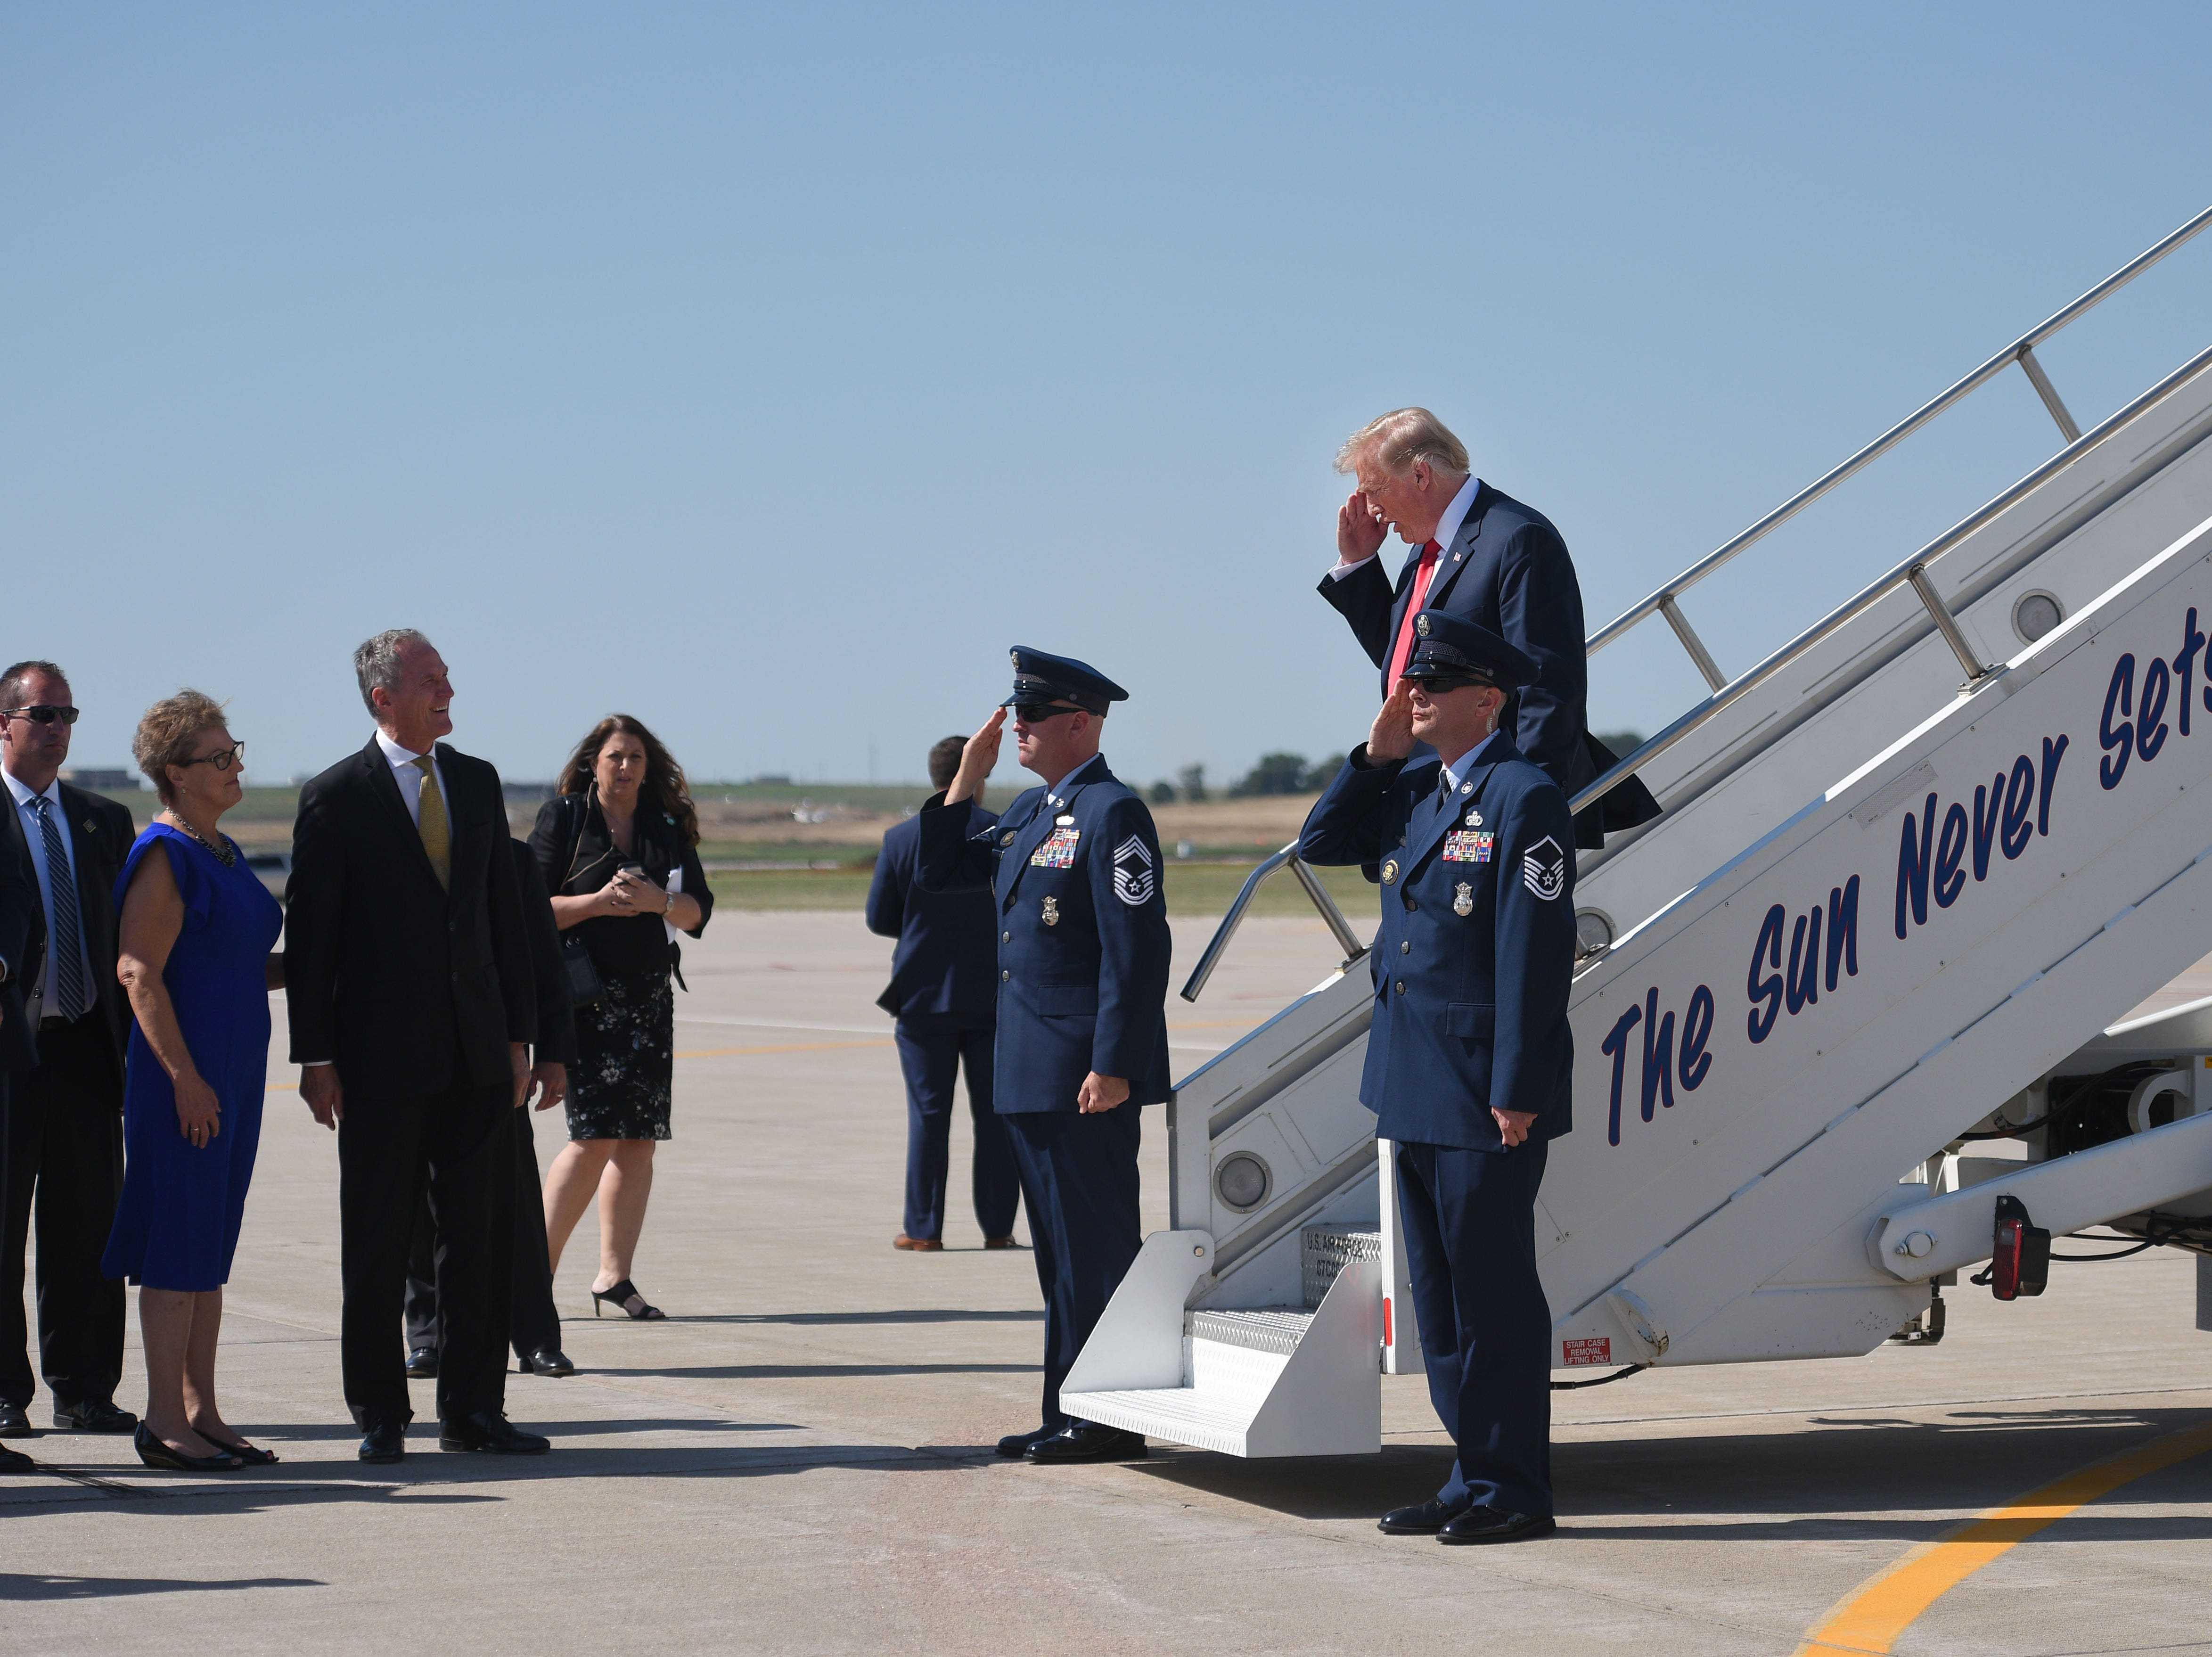 President Donald Trump steps off Air Force One Friday, Sept. 7, at South Dakota Air National Guard in Sioux Falls.